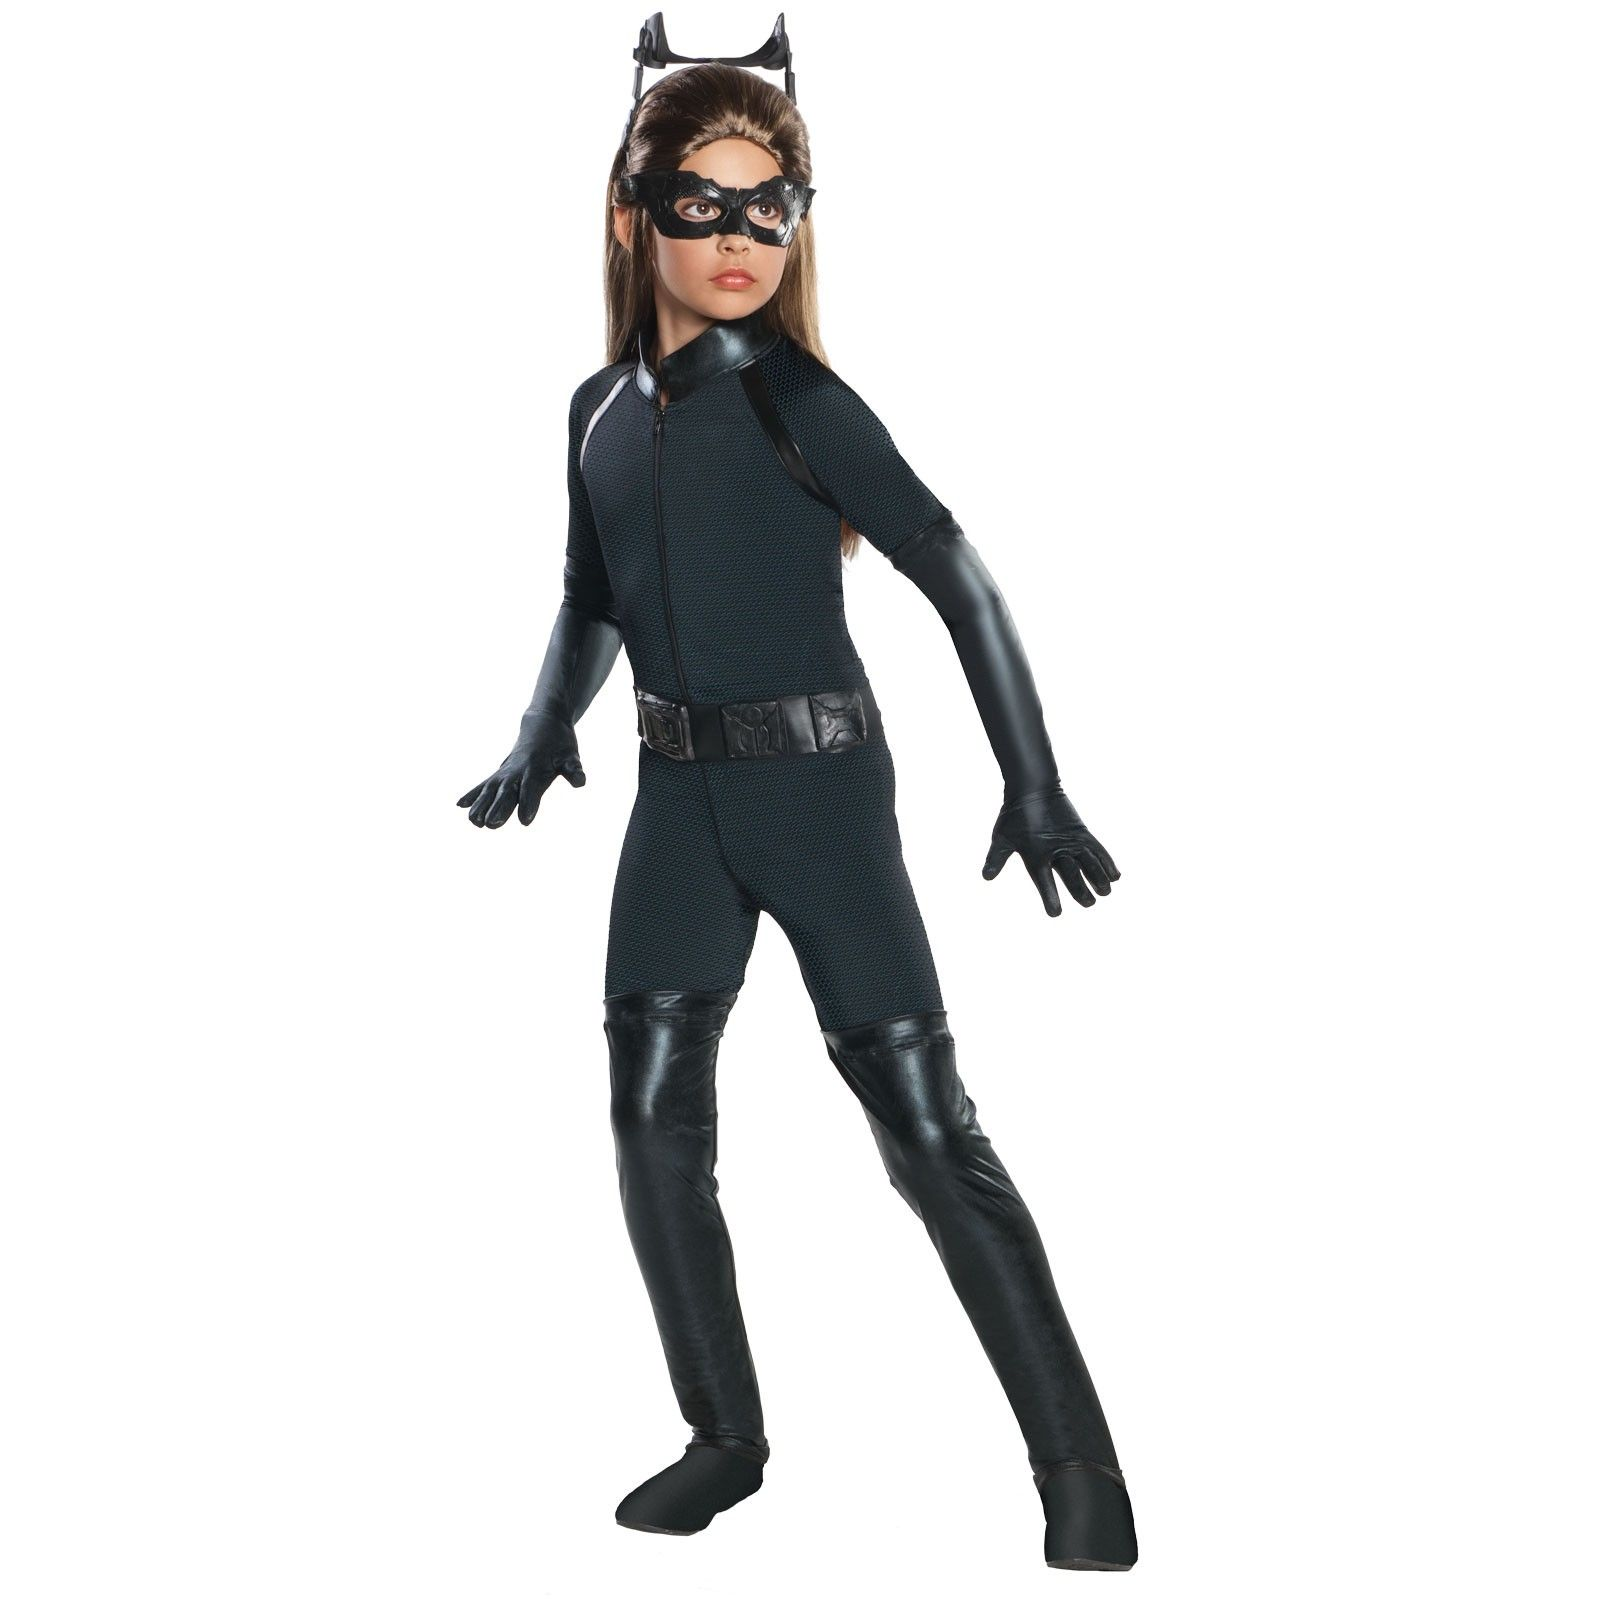 The Dark Knight Rises Deluxe Catwoman Child Costume  sc 1 st  Pinterest & The Dark Knight Rises Deluxe Catwoman Child Costume | Halloween ...